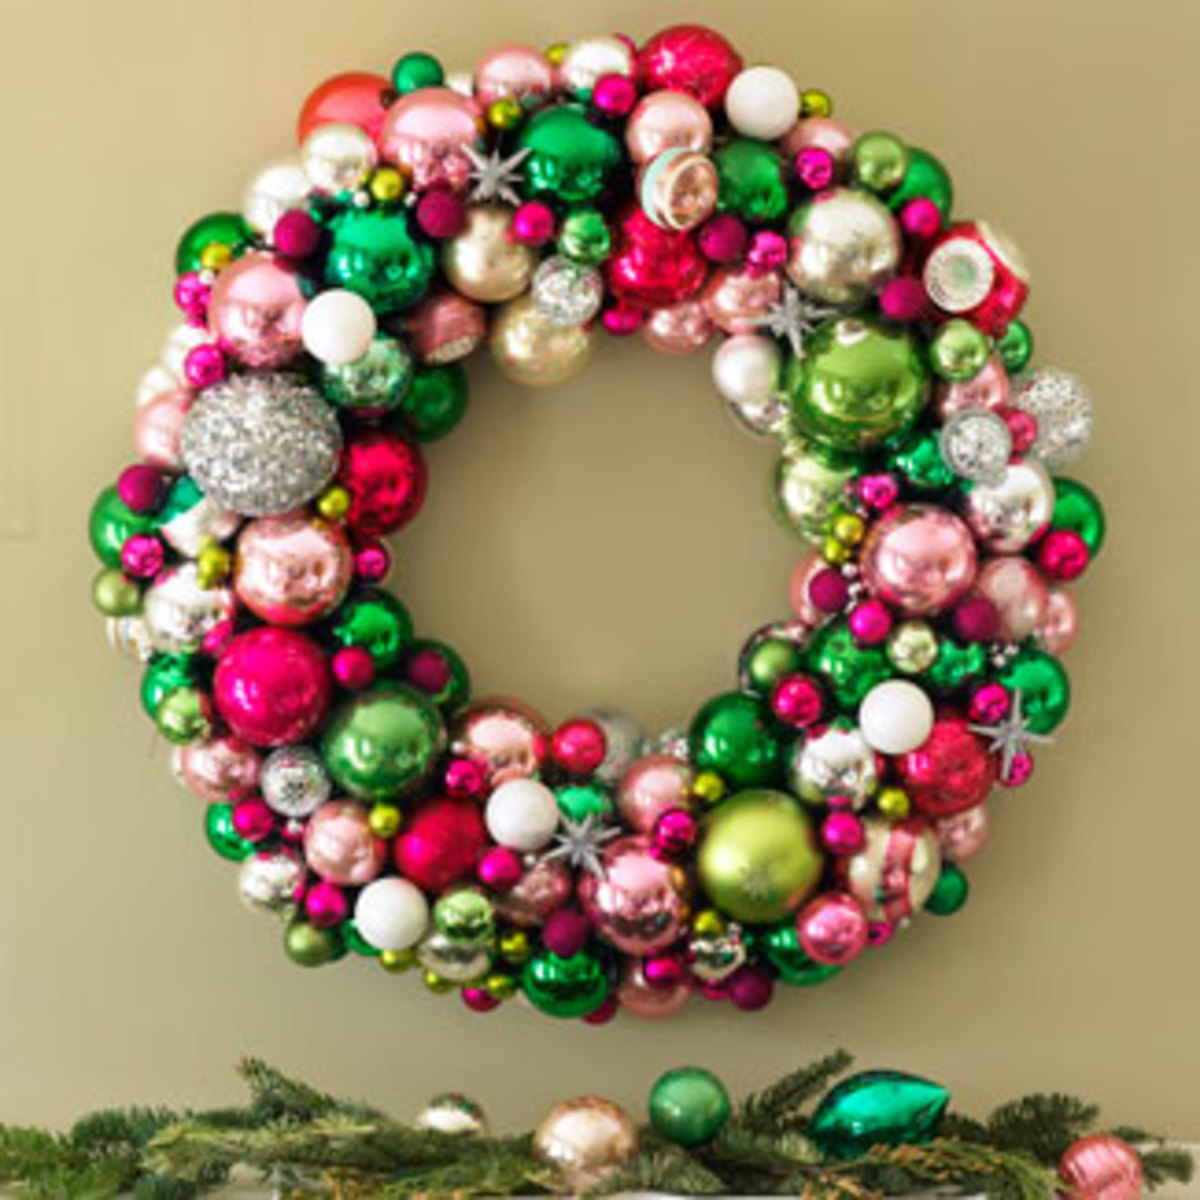 How to Make a Holiday Wreath out of Christmas Ornaments